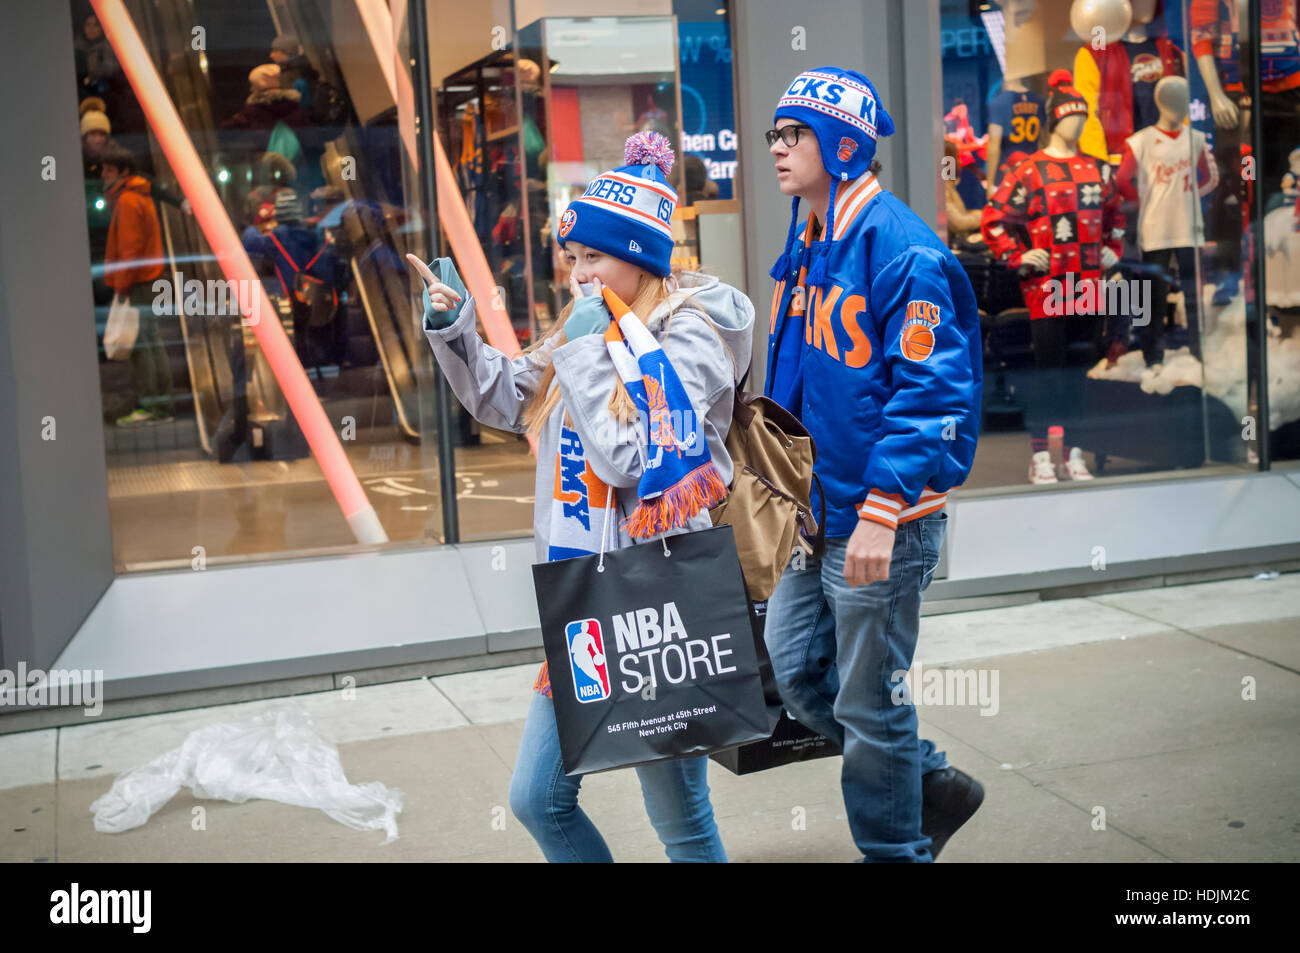 e1044715f Basketball fans leave the NBA store on Fifth Avenue in Midtown Manhattan in  New York on Sunday